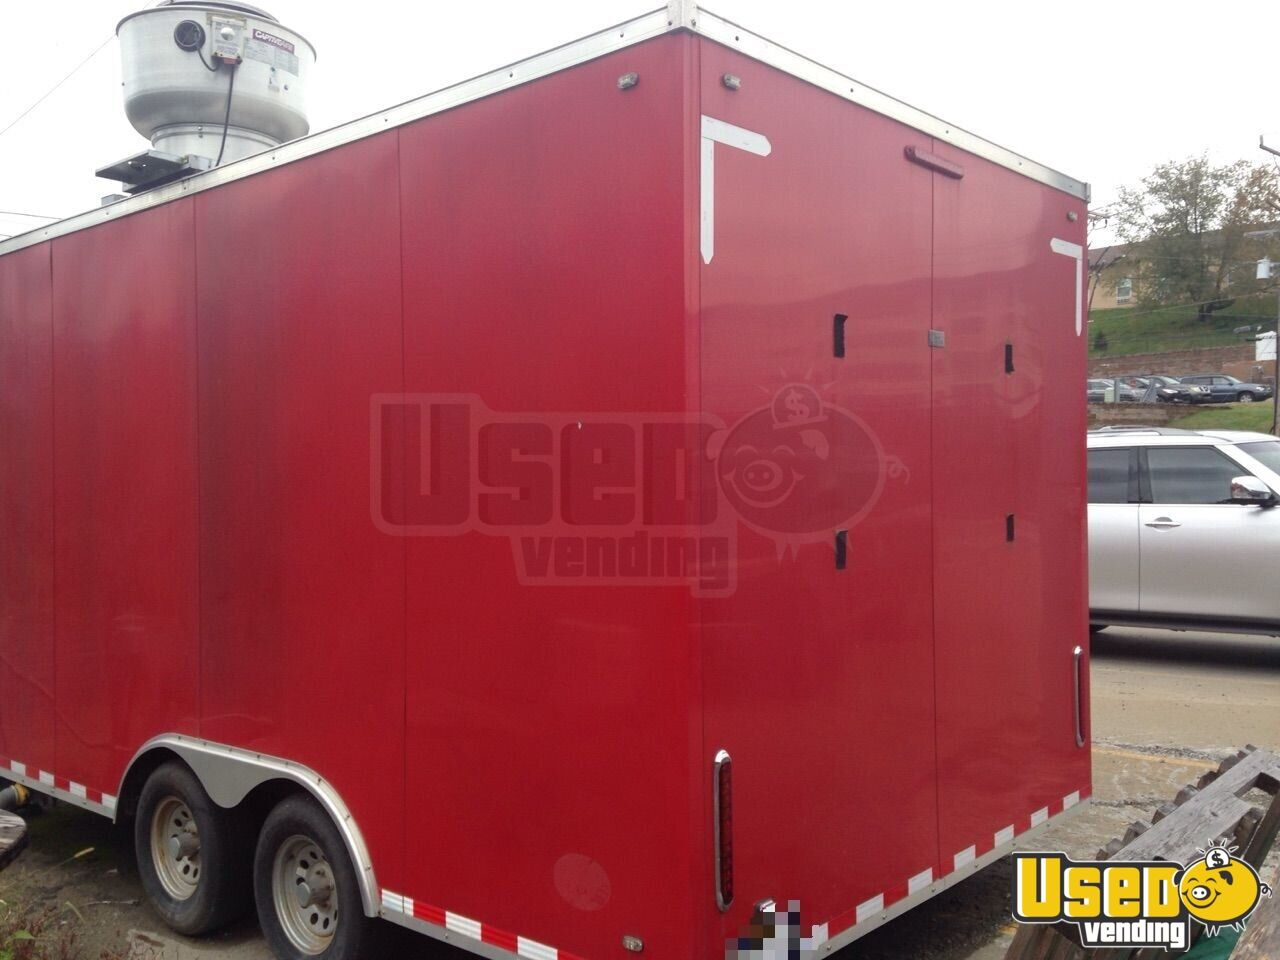 Kitchen Food Trailer Concession Window West Virginia for Sale - 3